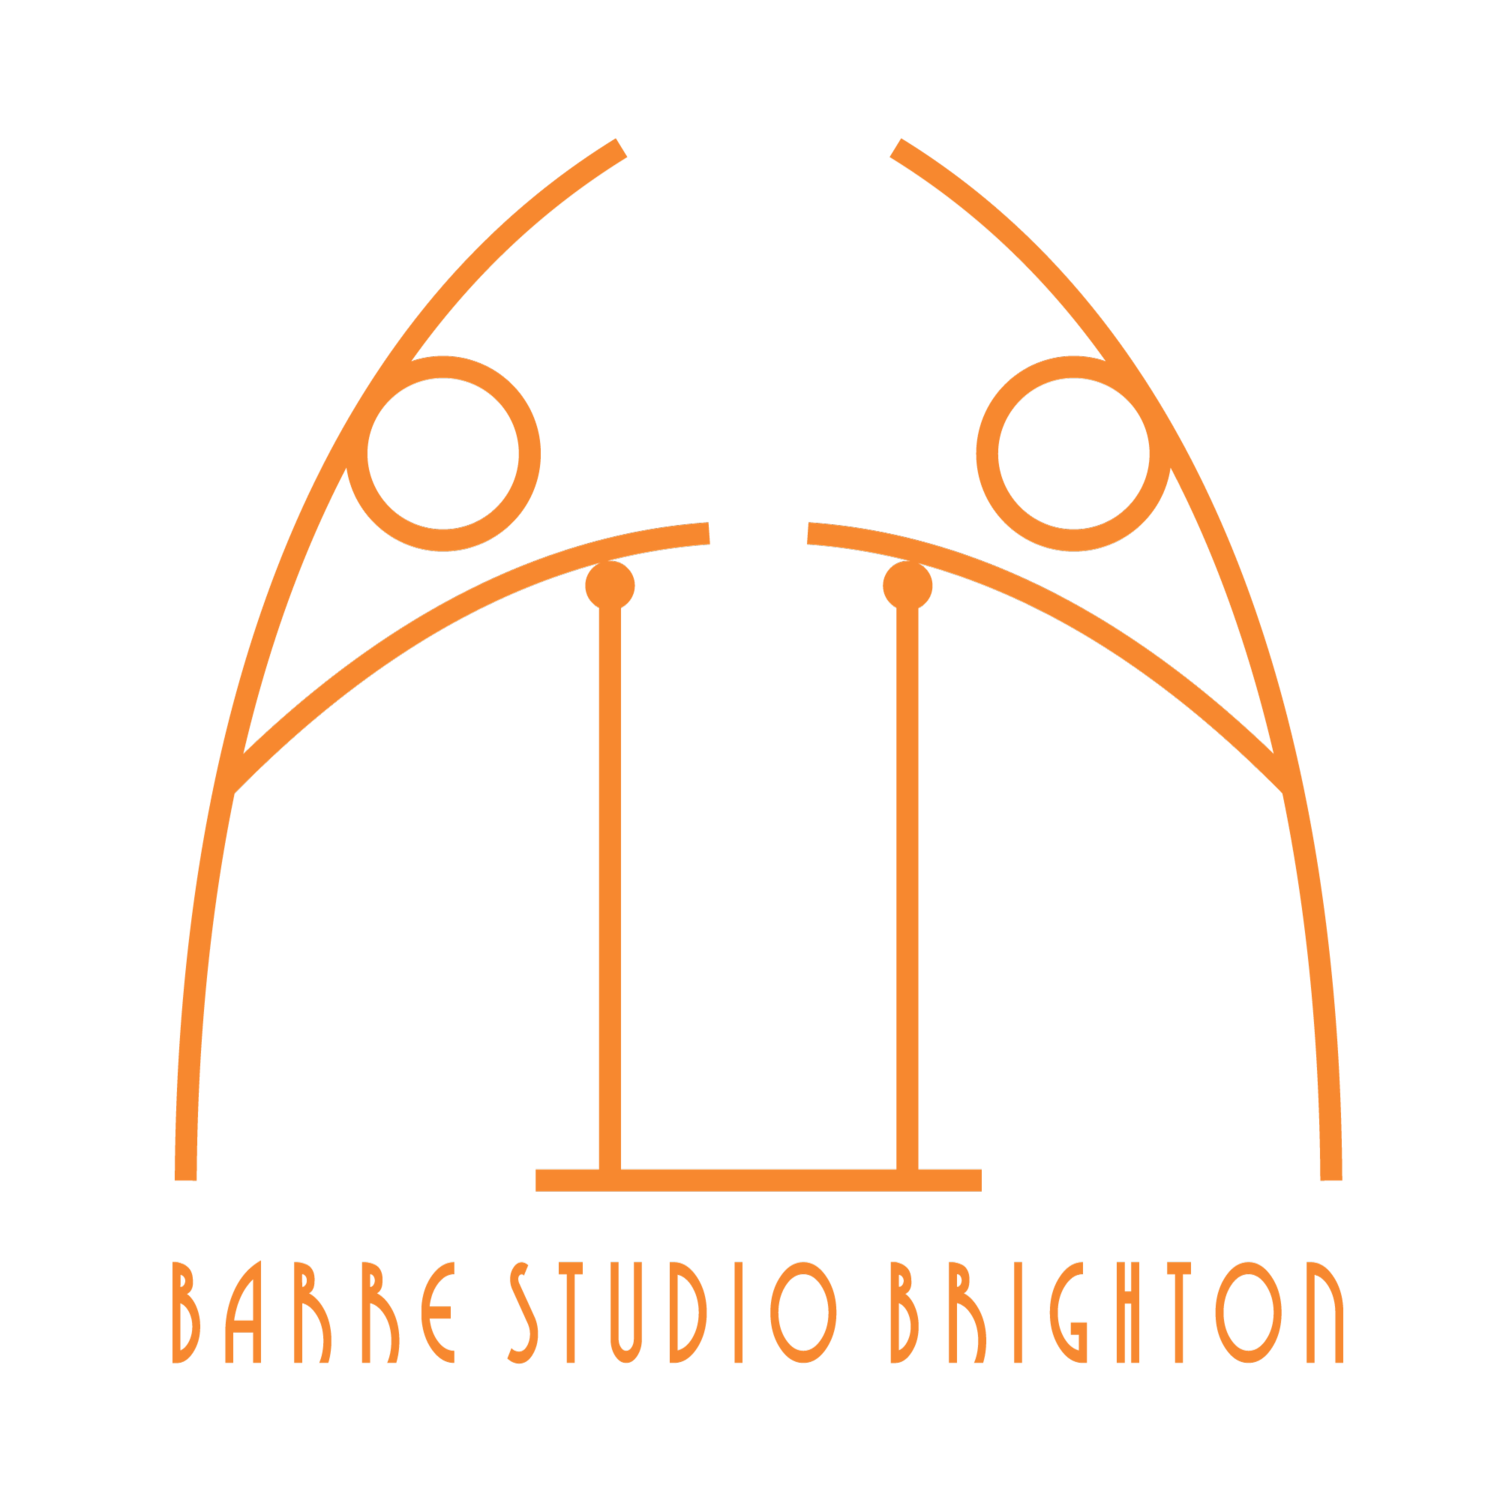 Barre Studio Brighton